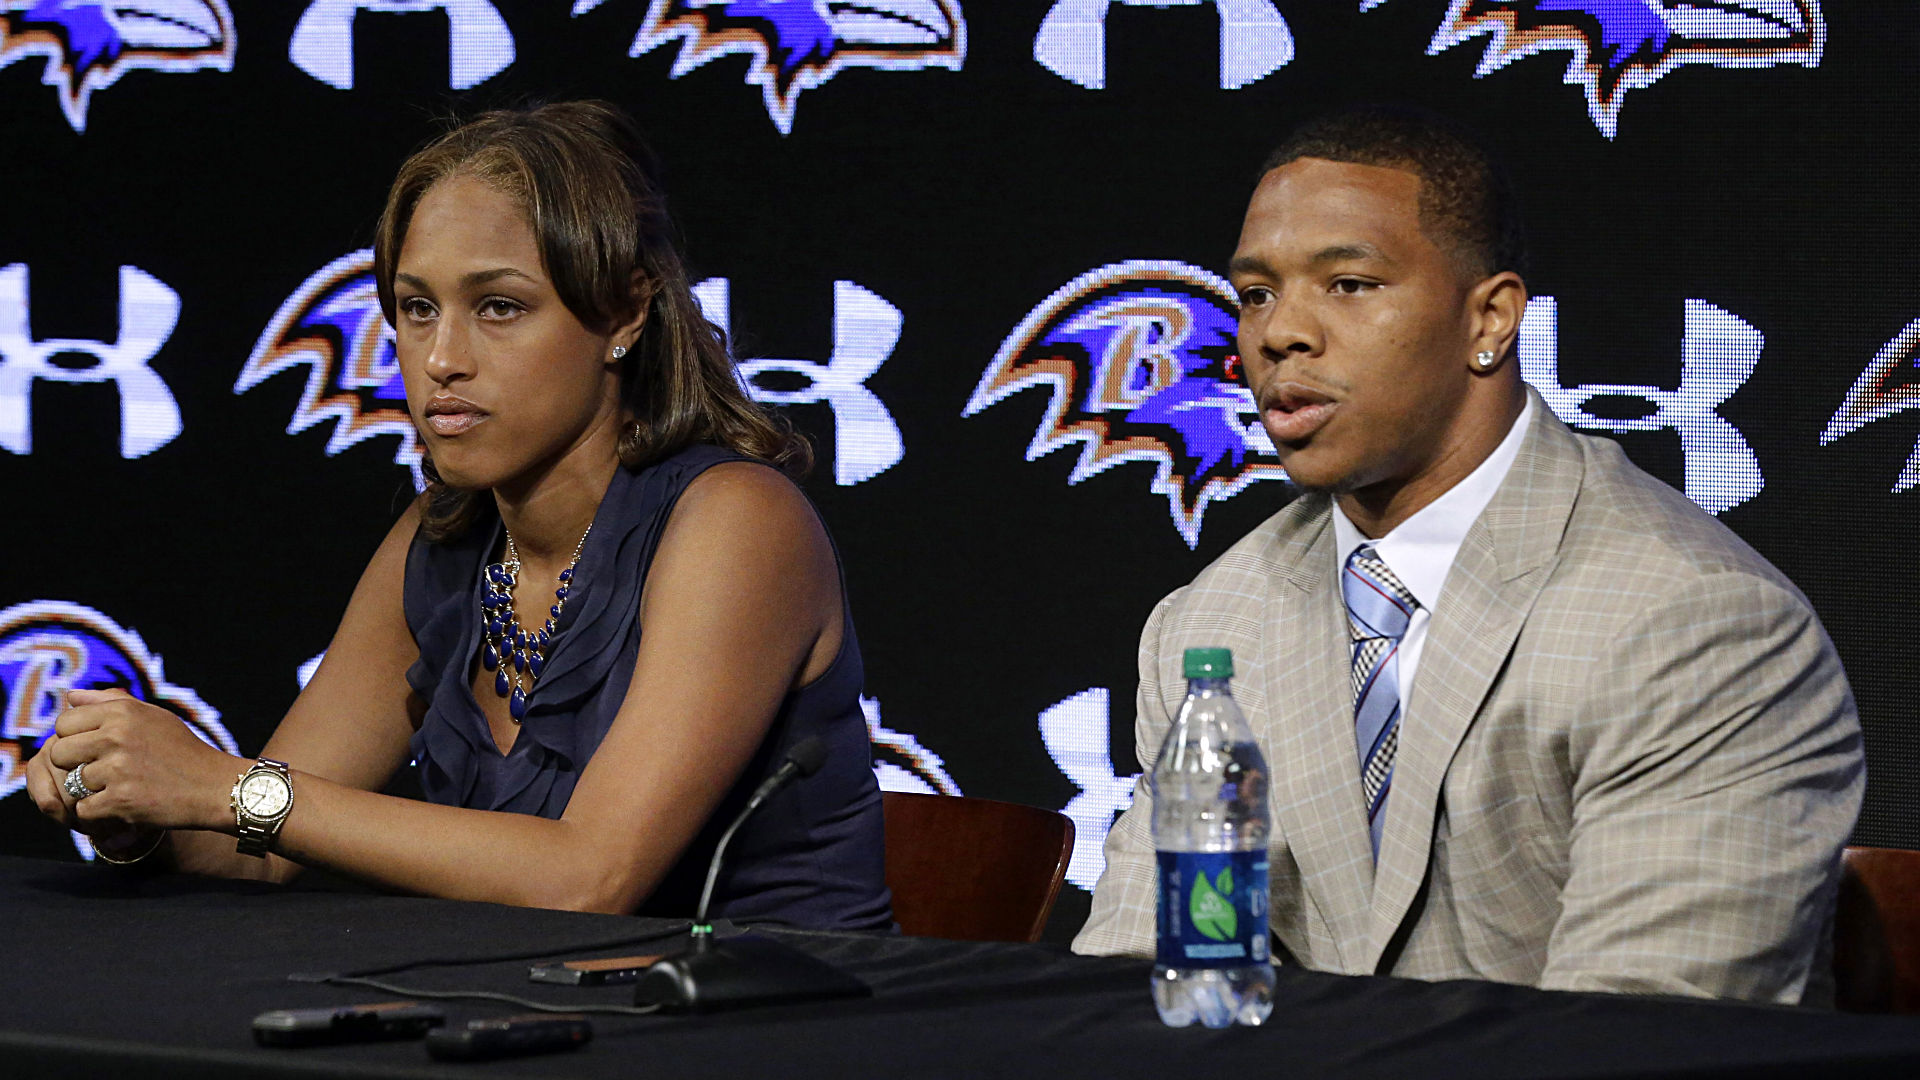 NFL suspends Ravens' Ray Rice two games